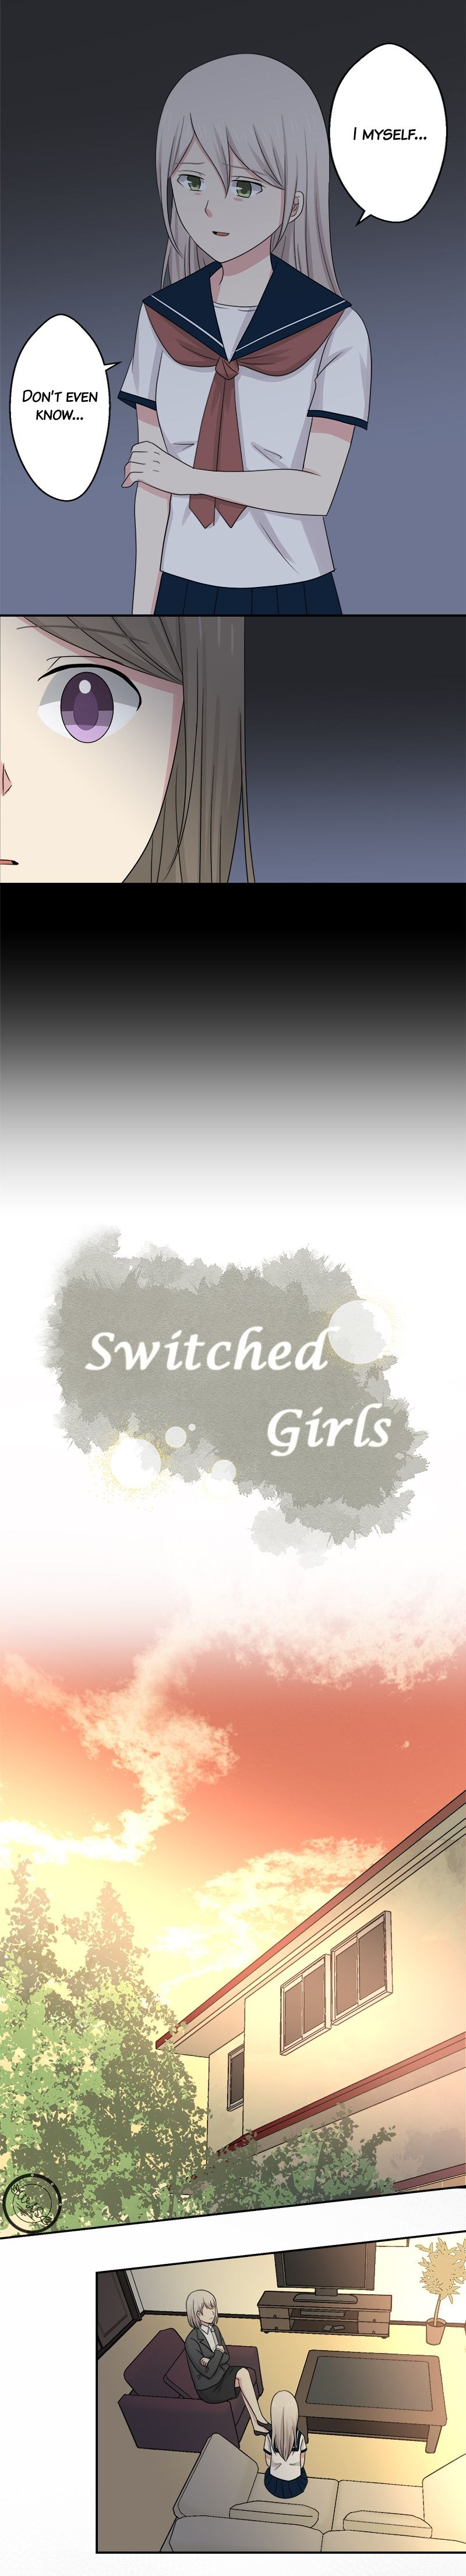 Switched Girls - chapter 43 - #2